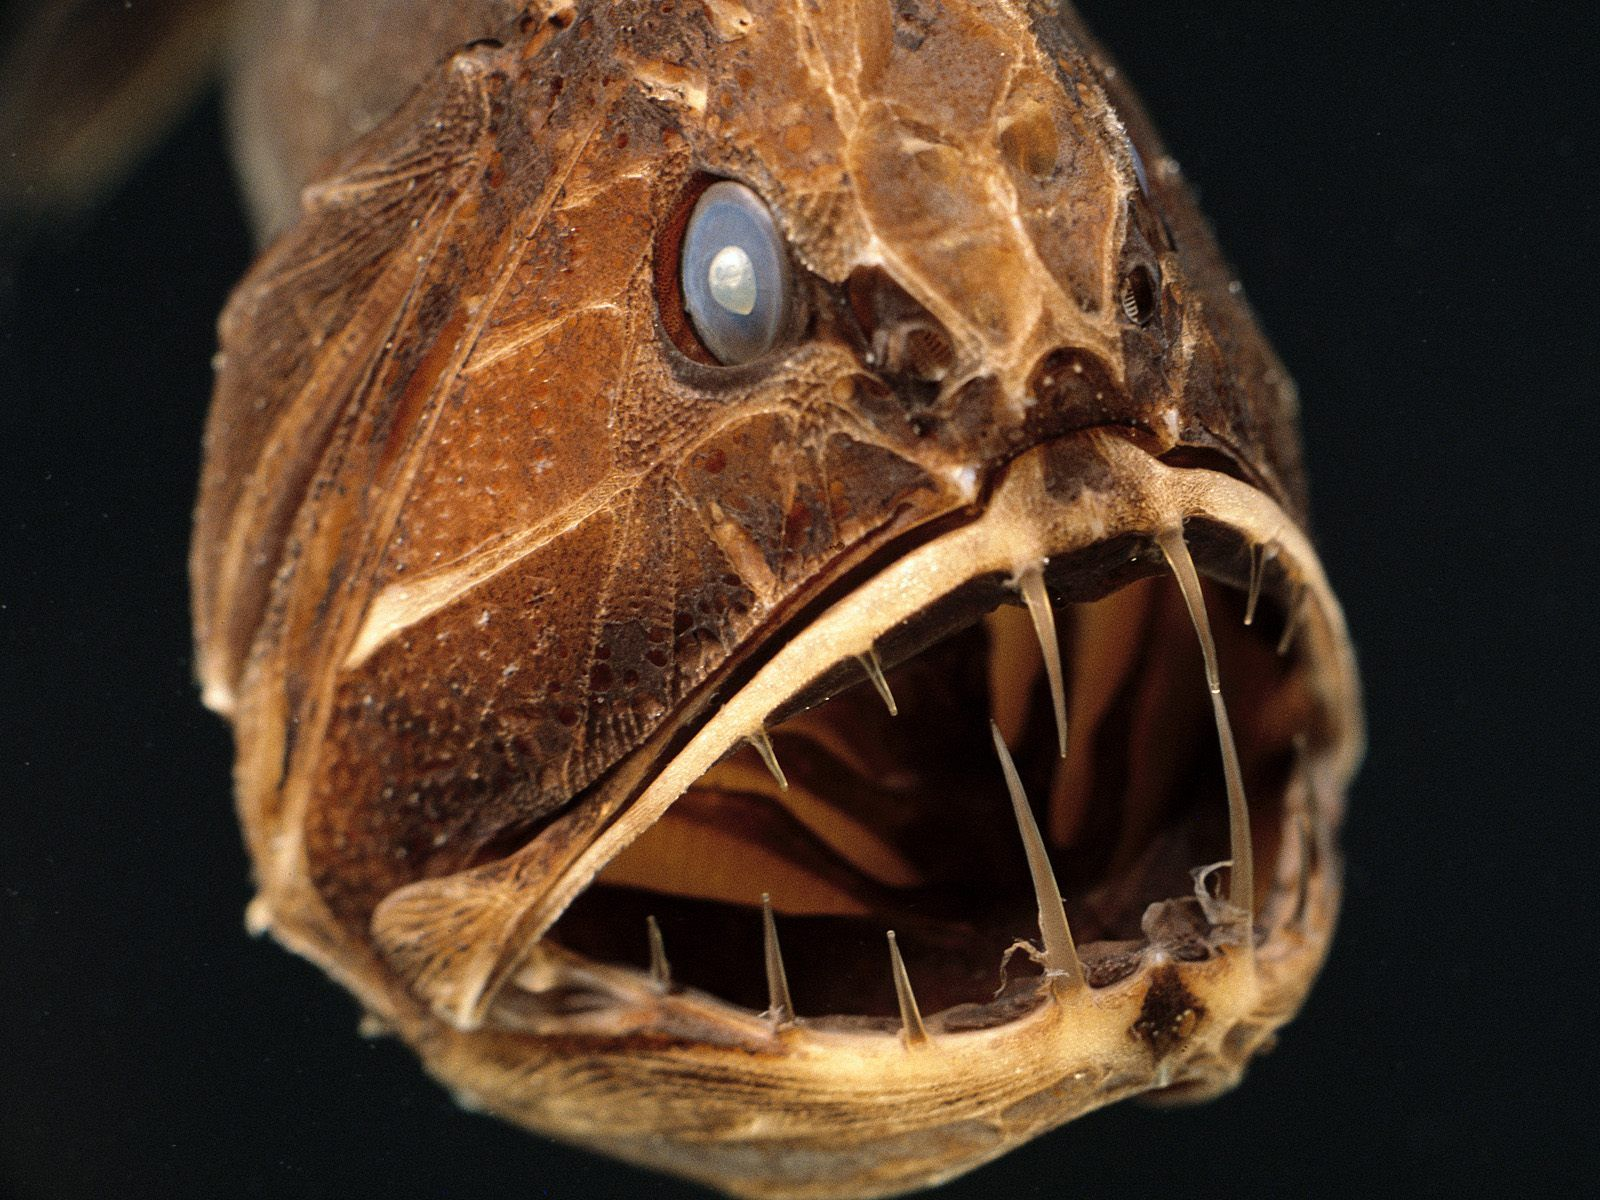 Predatory and terrible, barbed, sea fish with a huge mouth, wallpaper, the inhabitants of the underwater world, the animals